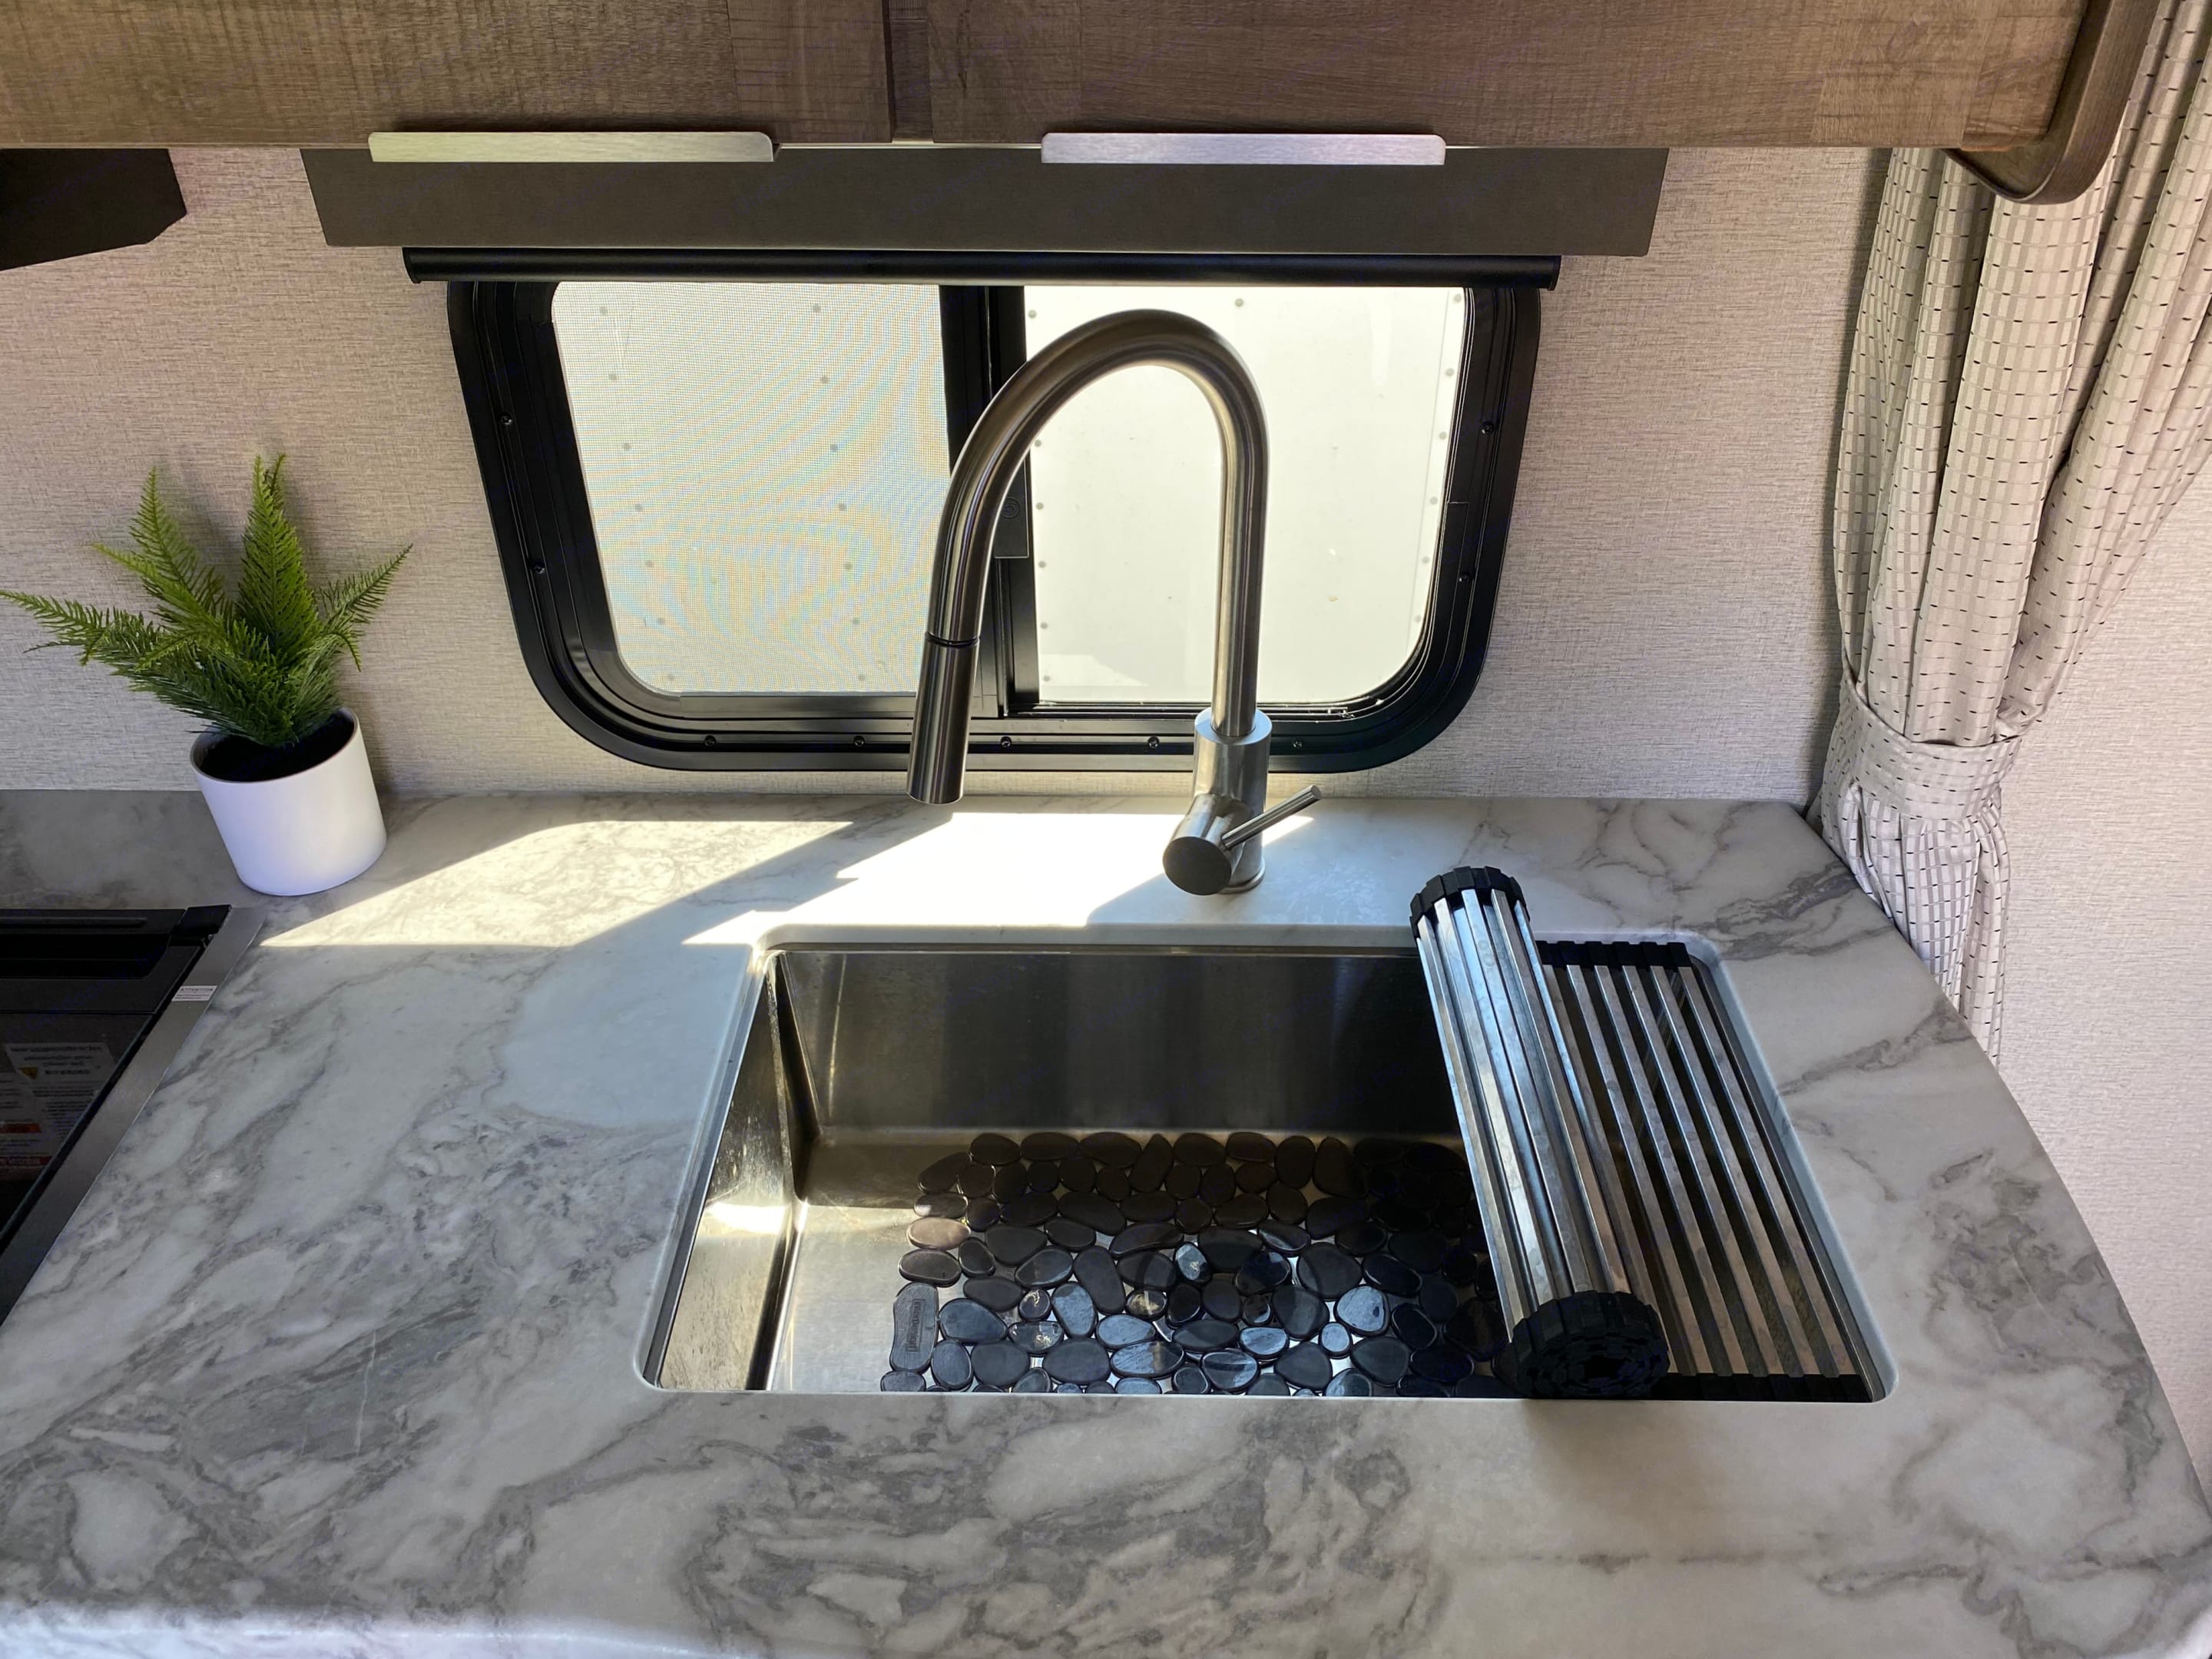 Deep seated stainless steel kitchen sink with roll up drying mat.. Grand Design Other 2021